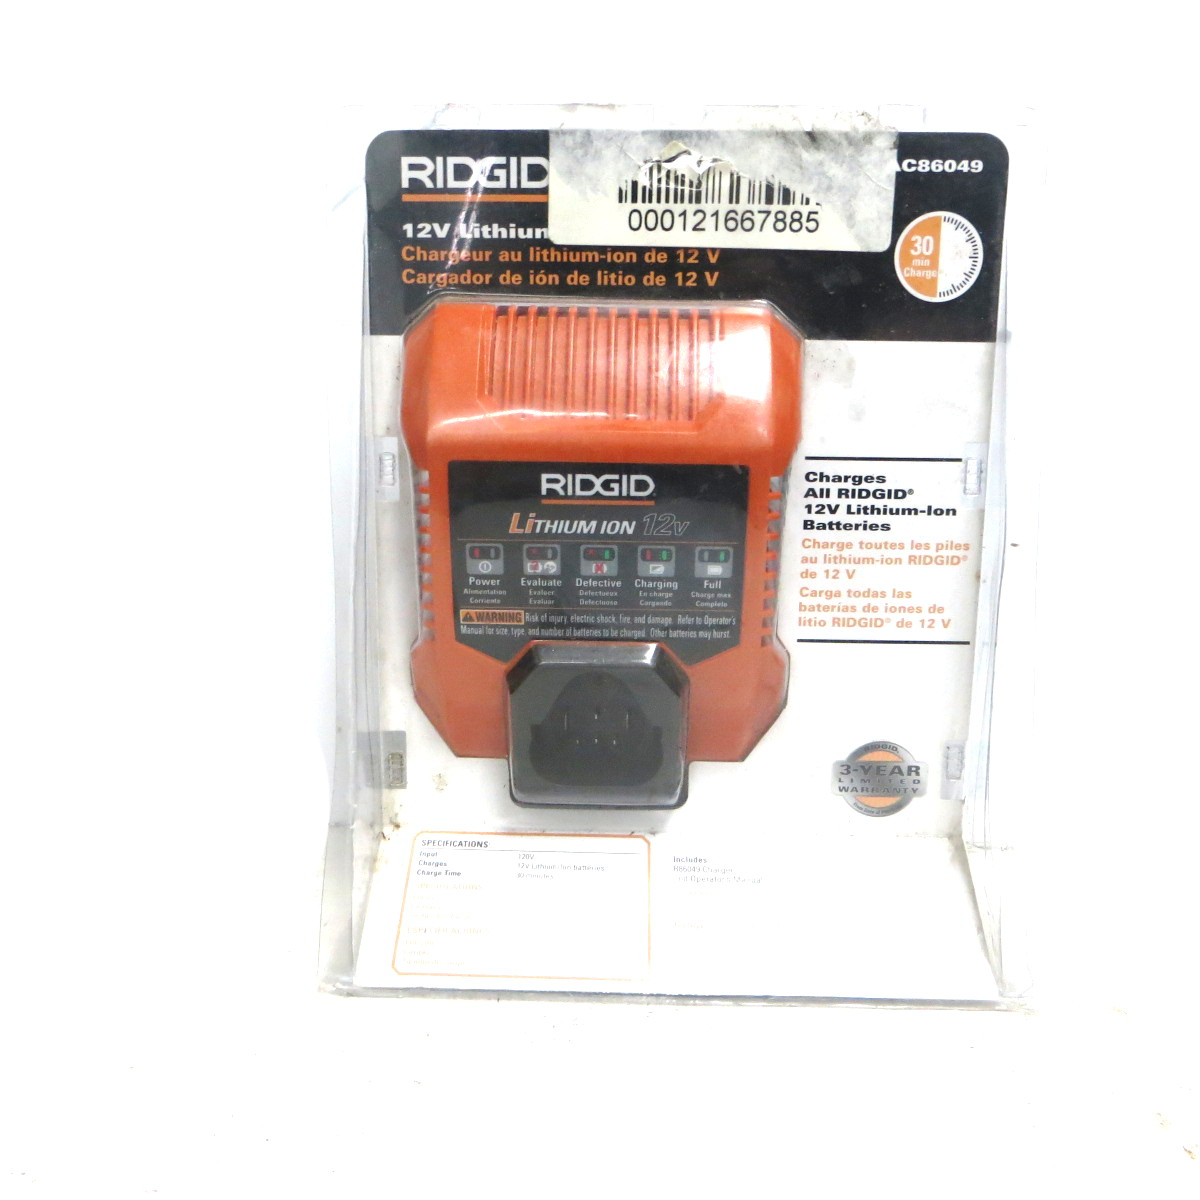 Ridgid Battery Charger Evaluate